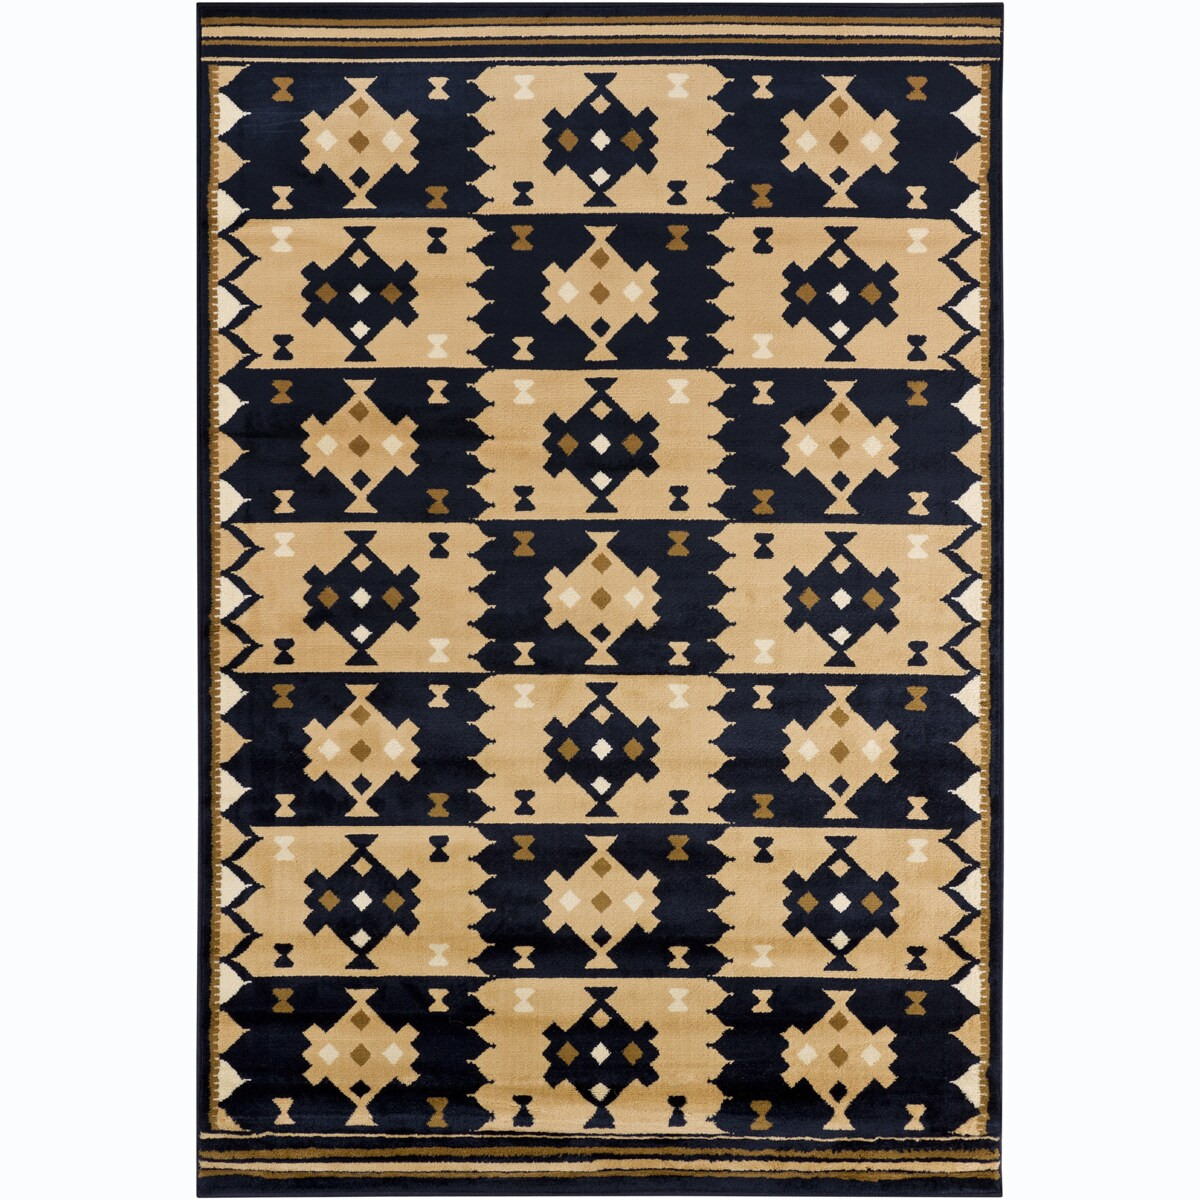 Artist's Loom Indoor Contemporary Geometric Rug (8' x 11'2) - 8' x 11'